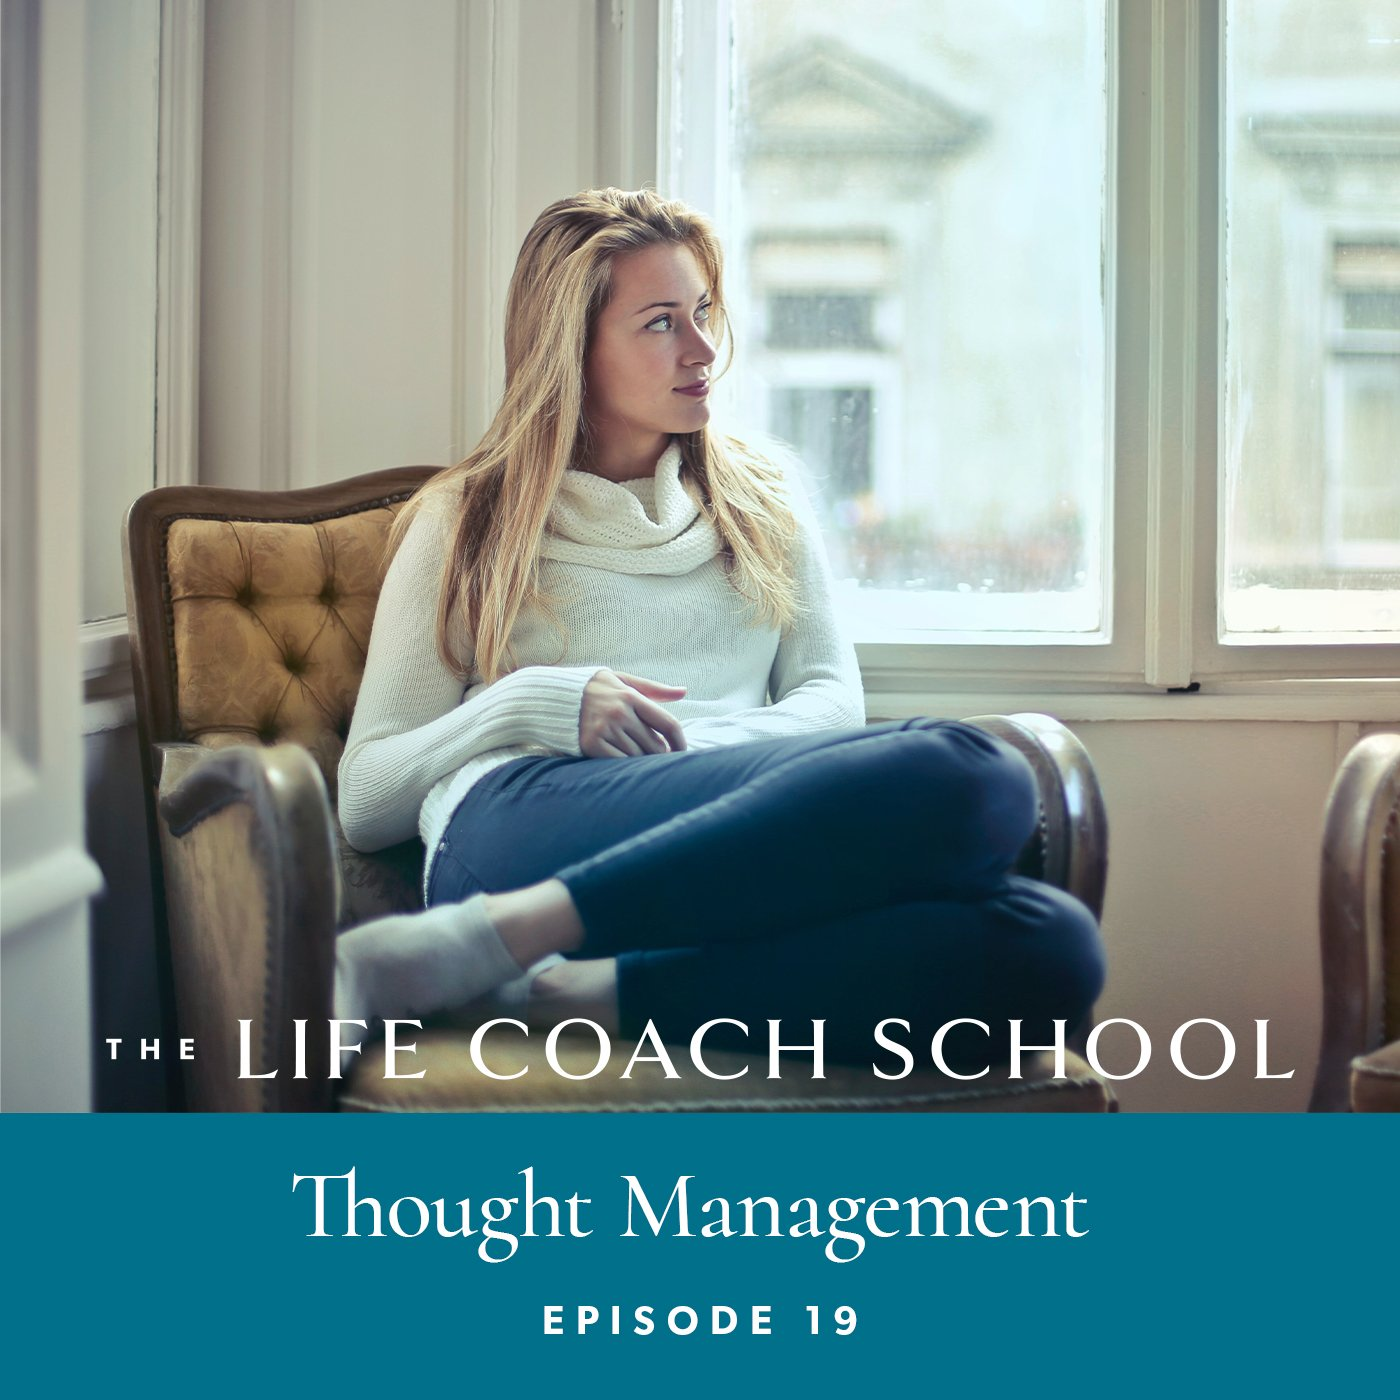 The Life Coach School Podcast with Brooke Castillo | Episode 19 | Thought Management